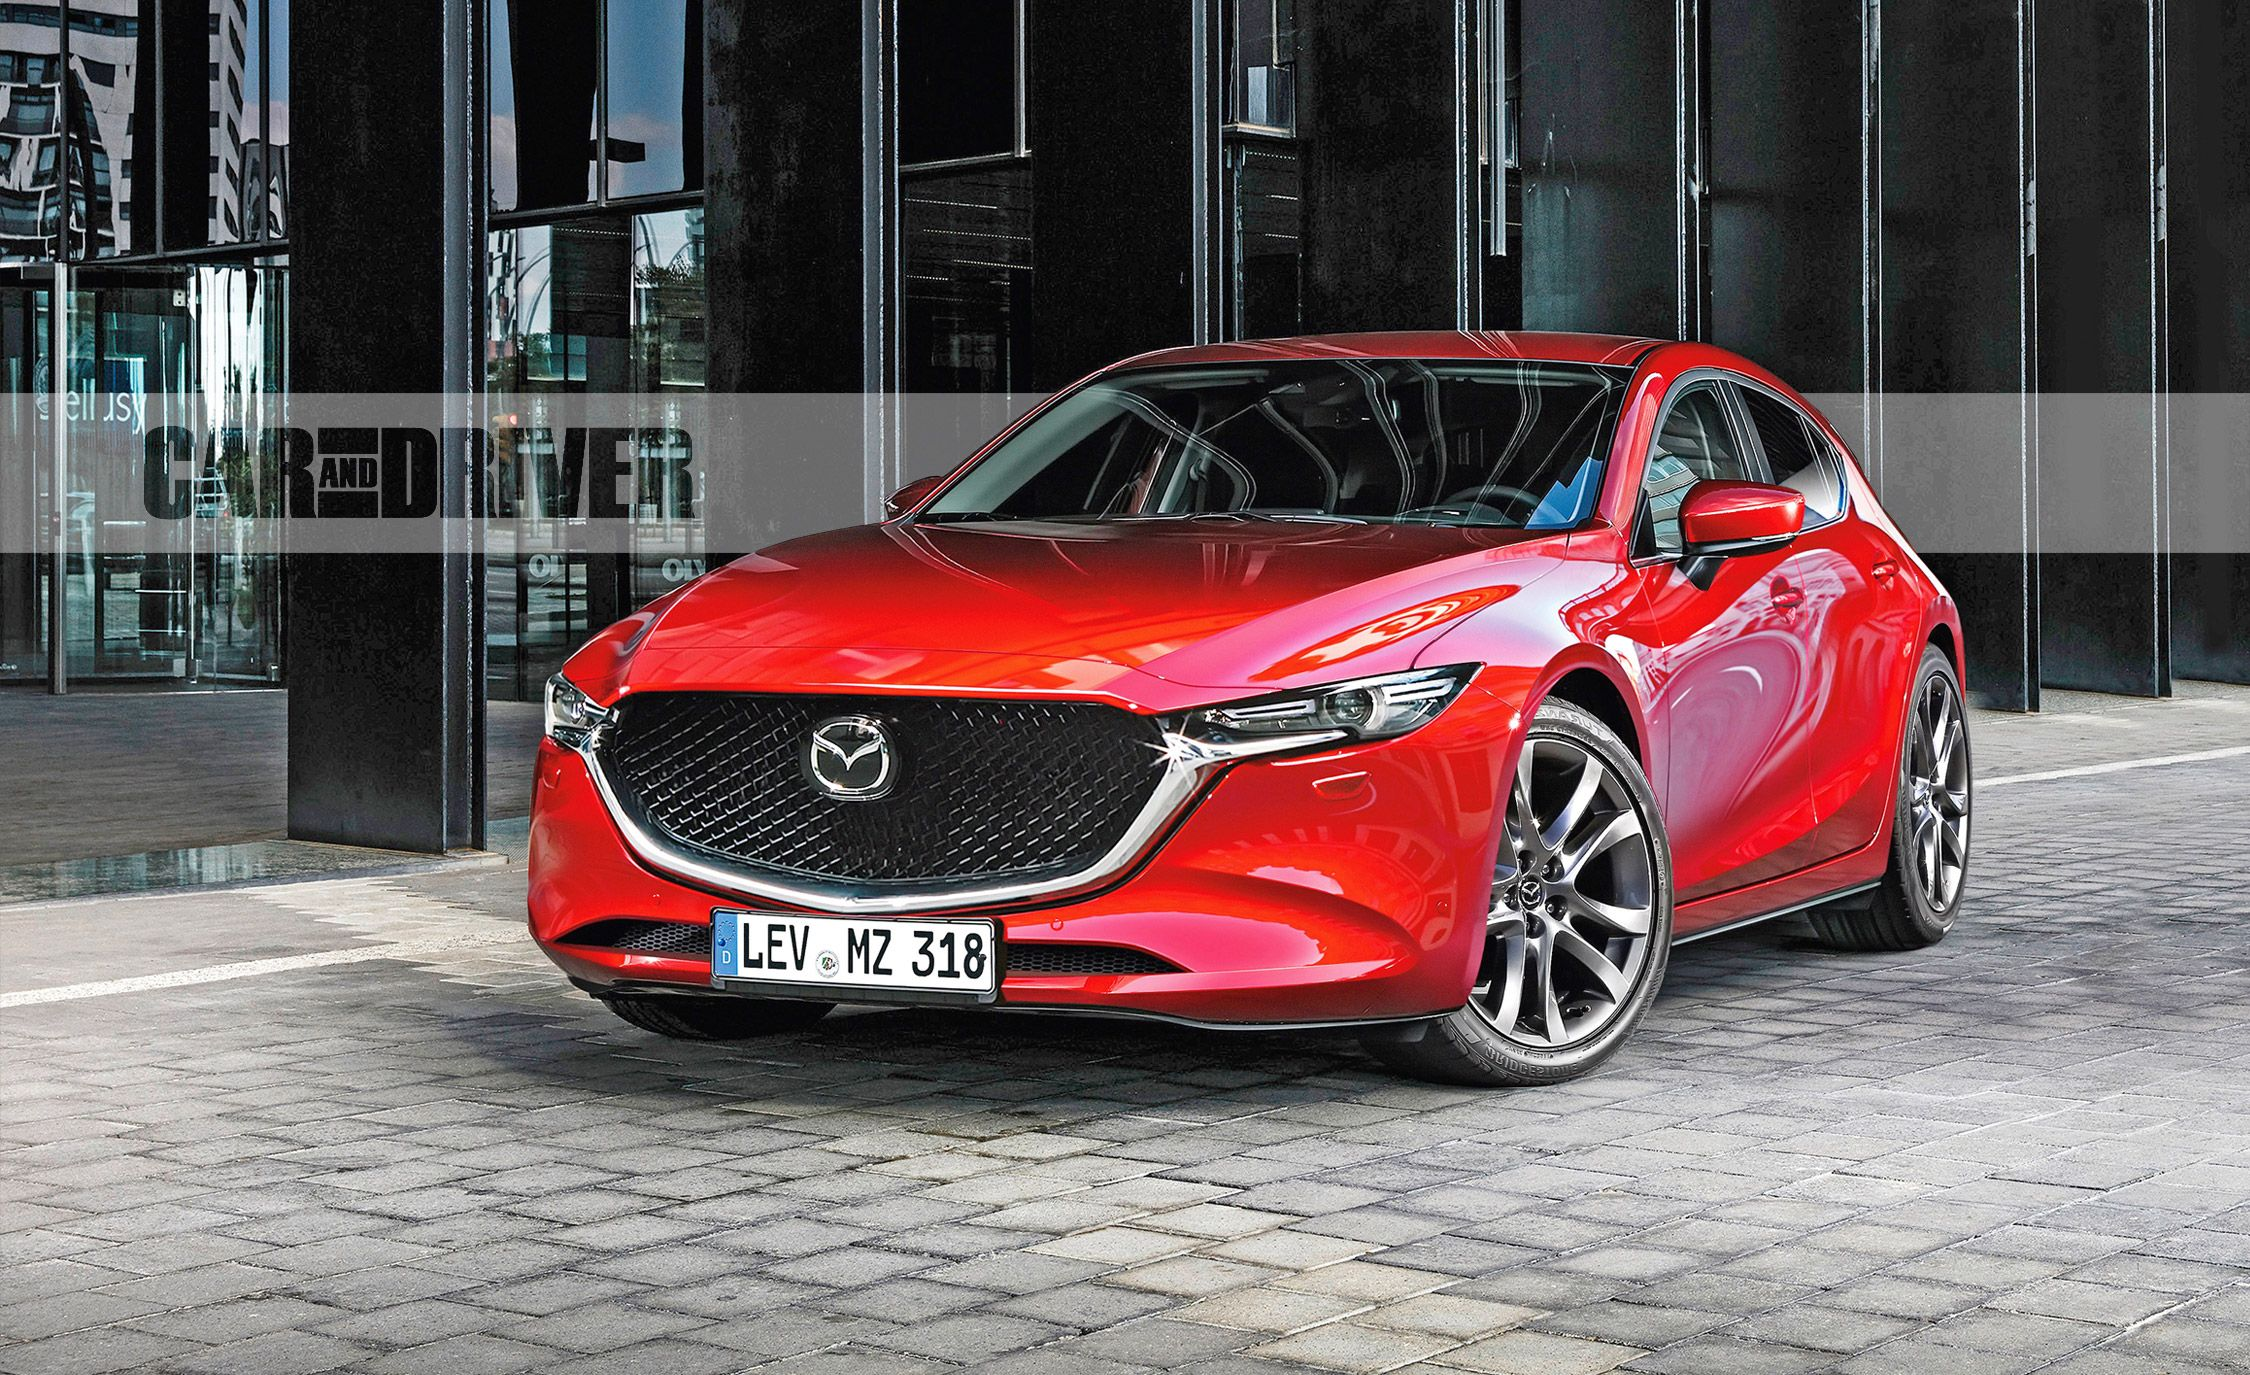 2020 Mazda 3 One Of The Best Compacts Looks To Get Even Better